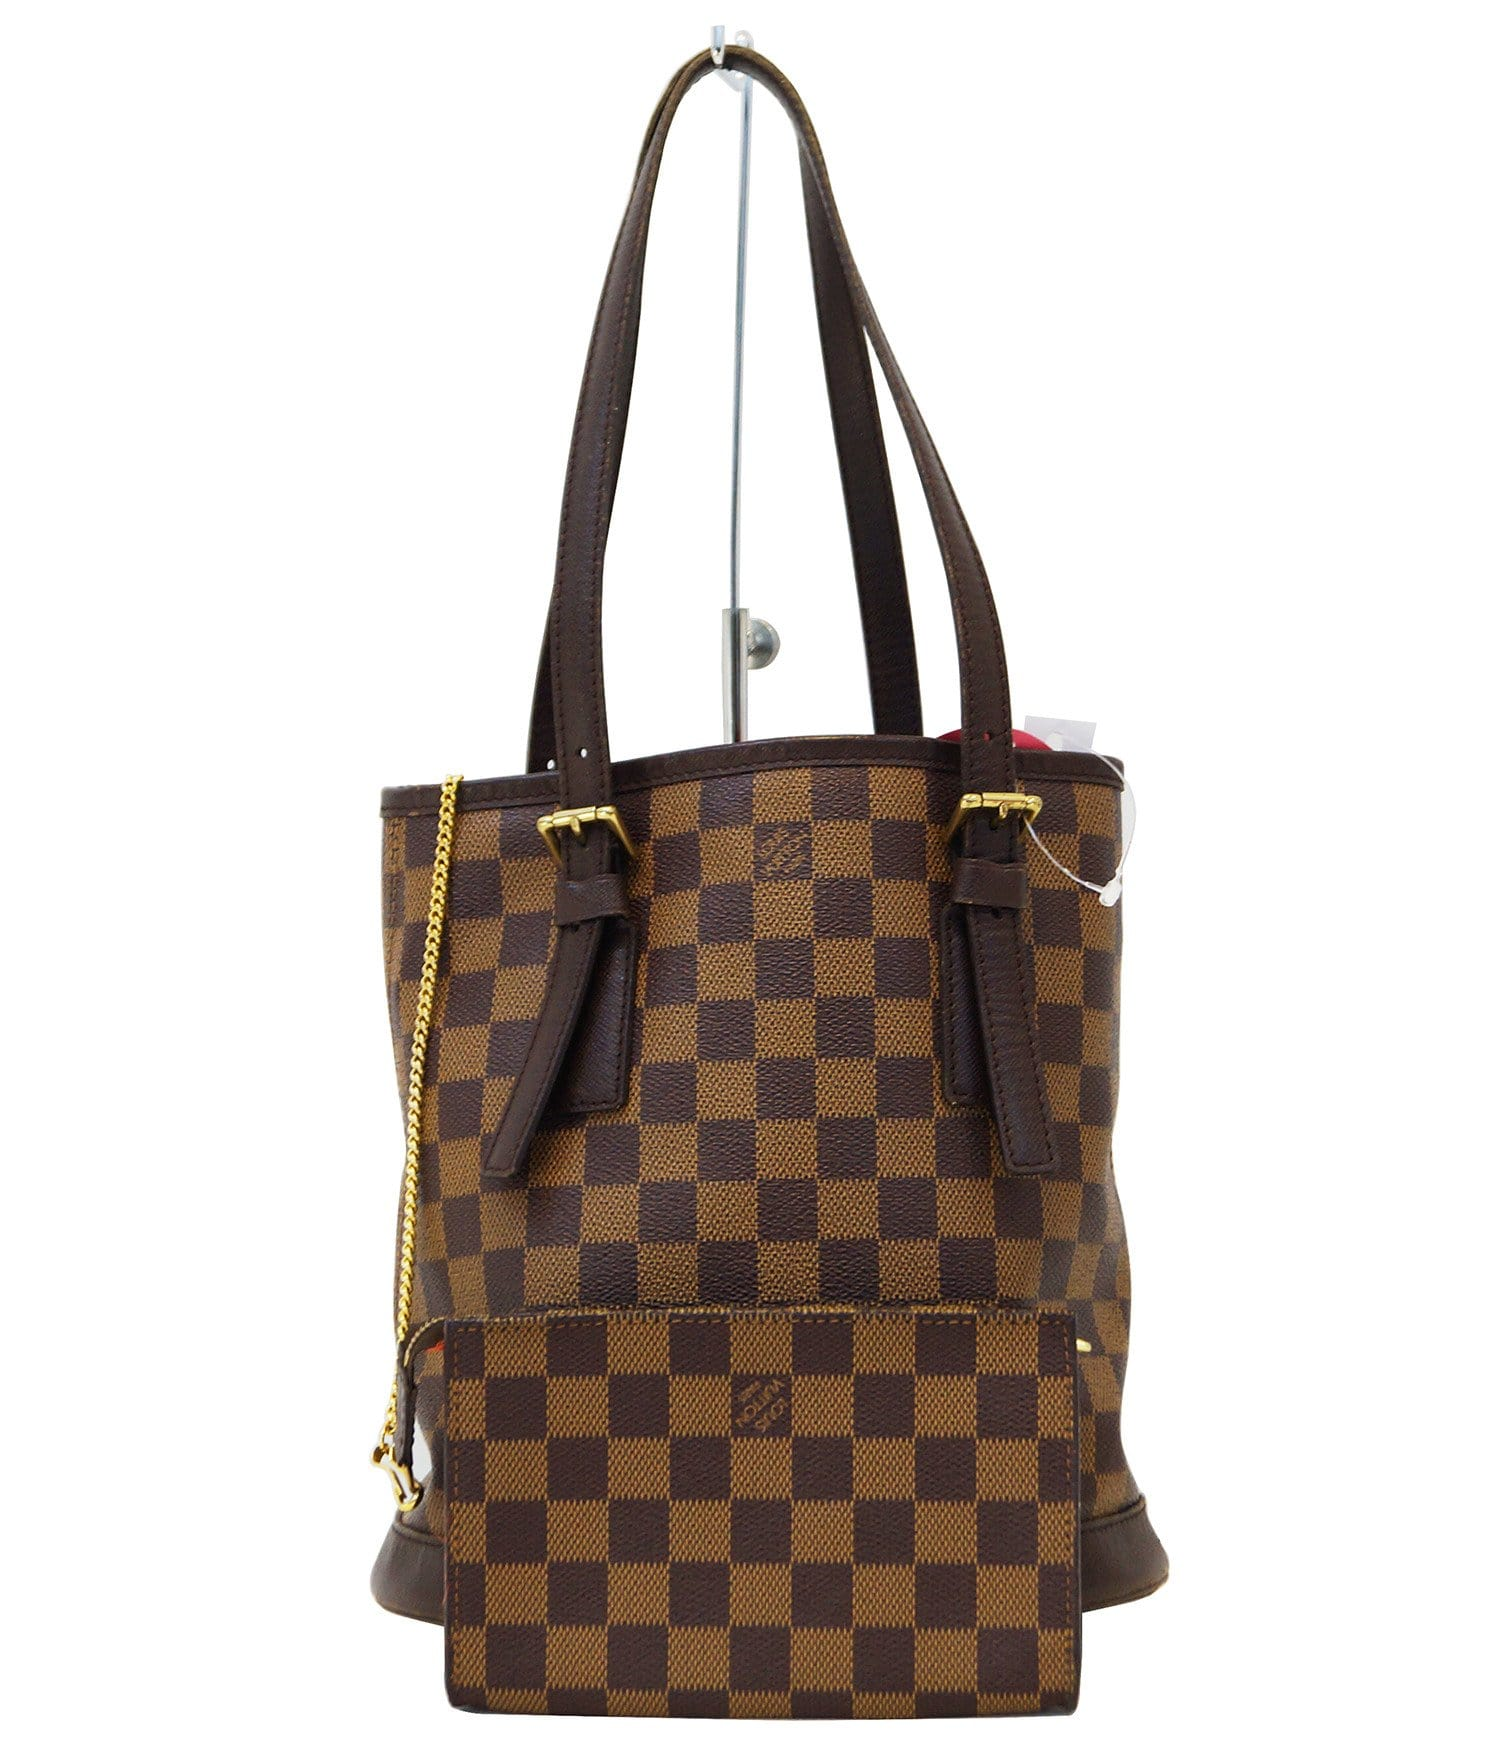 75aa6e8abf3b1 LOUIS VUITTON Damier Ebene Brown Marais Bucket Bag